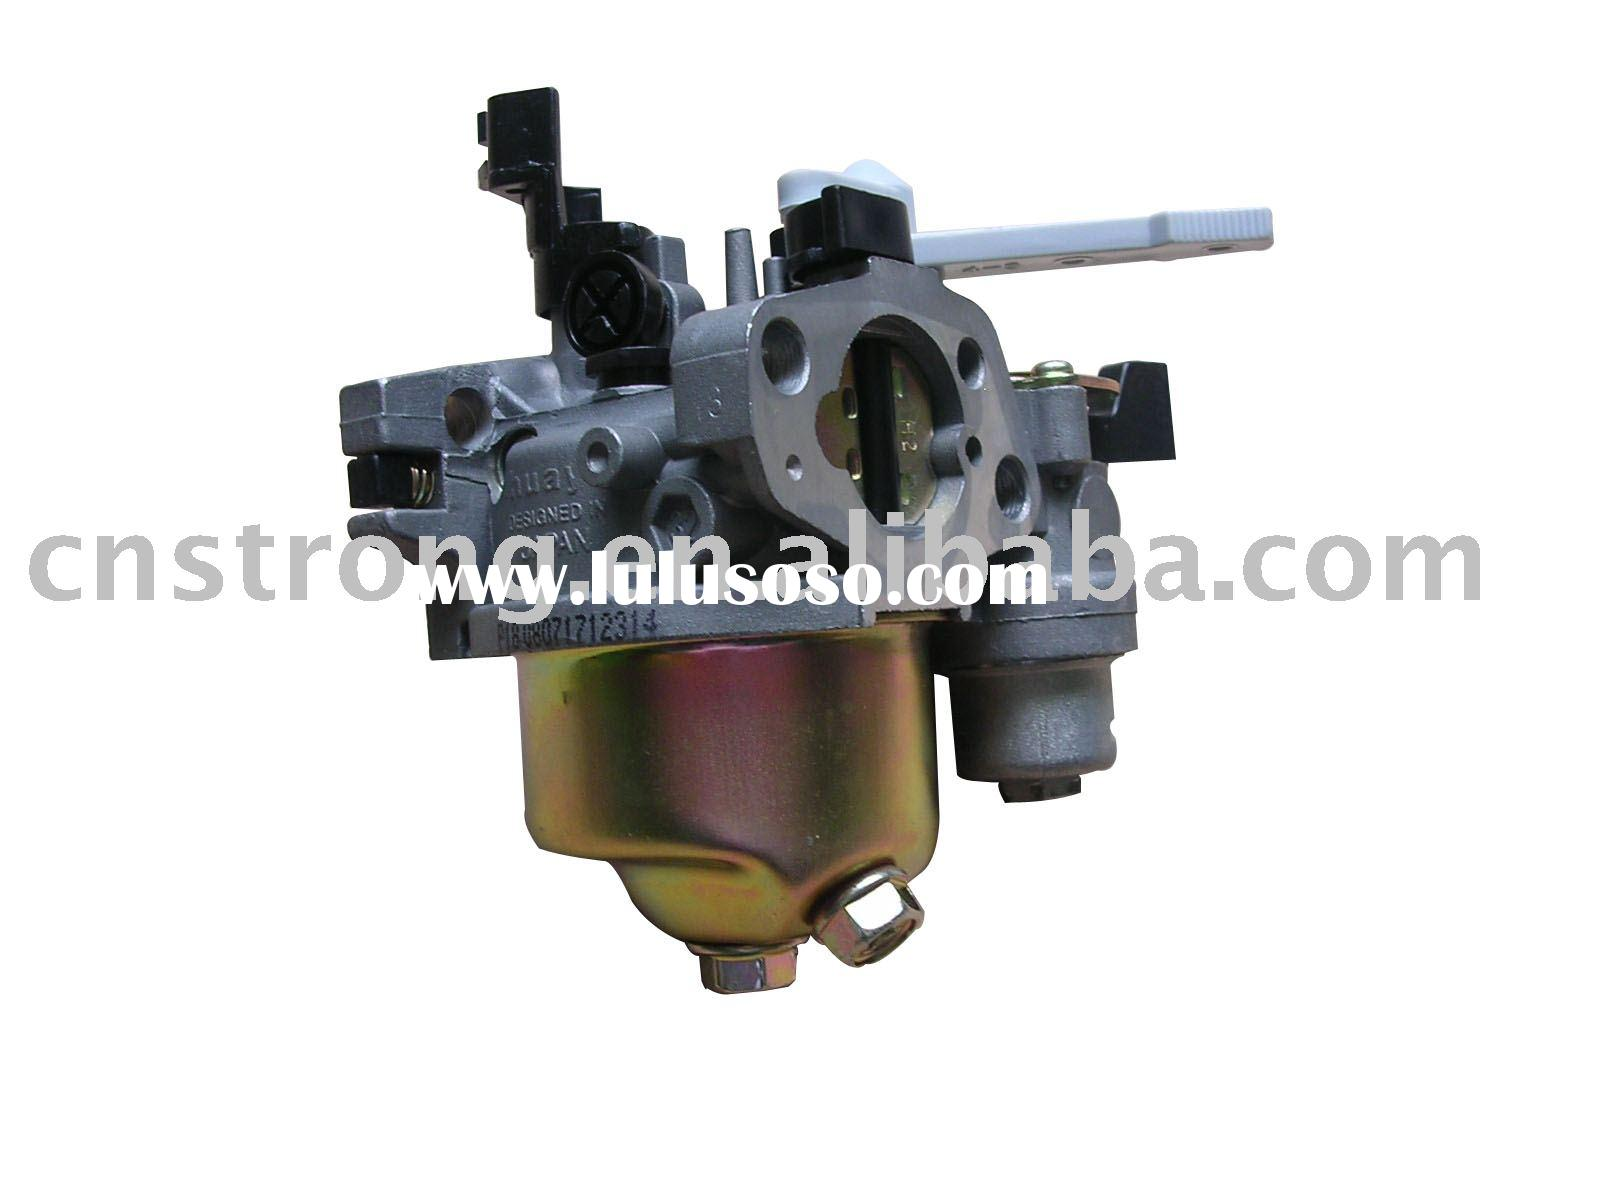 Champion generator carburetor parts pictures to pin on